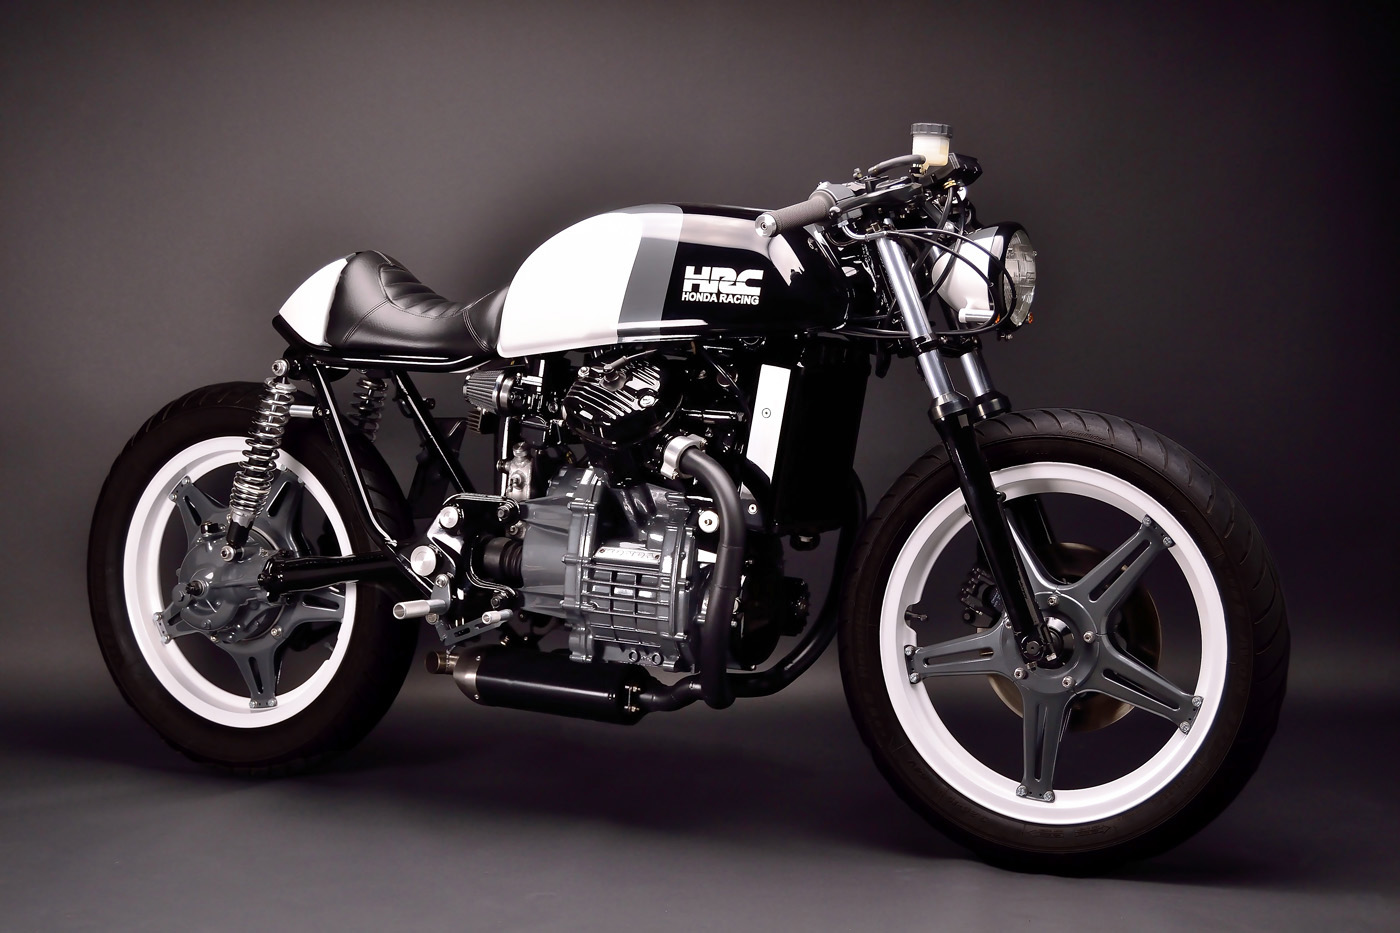 Custom Honda CX500 Cafe Racer Motorcycle Build